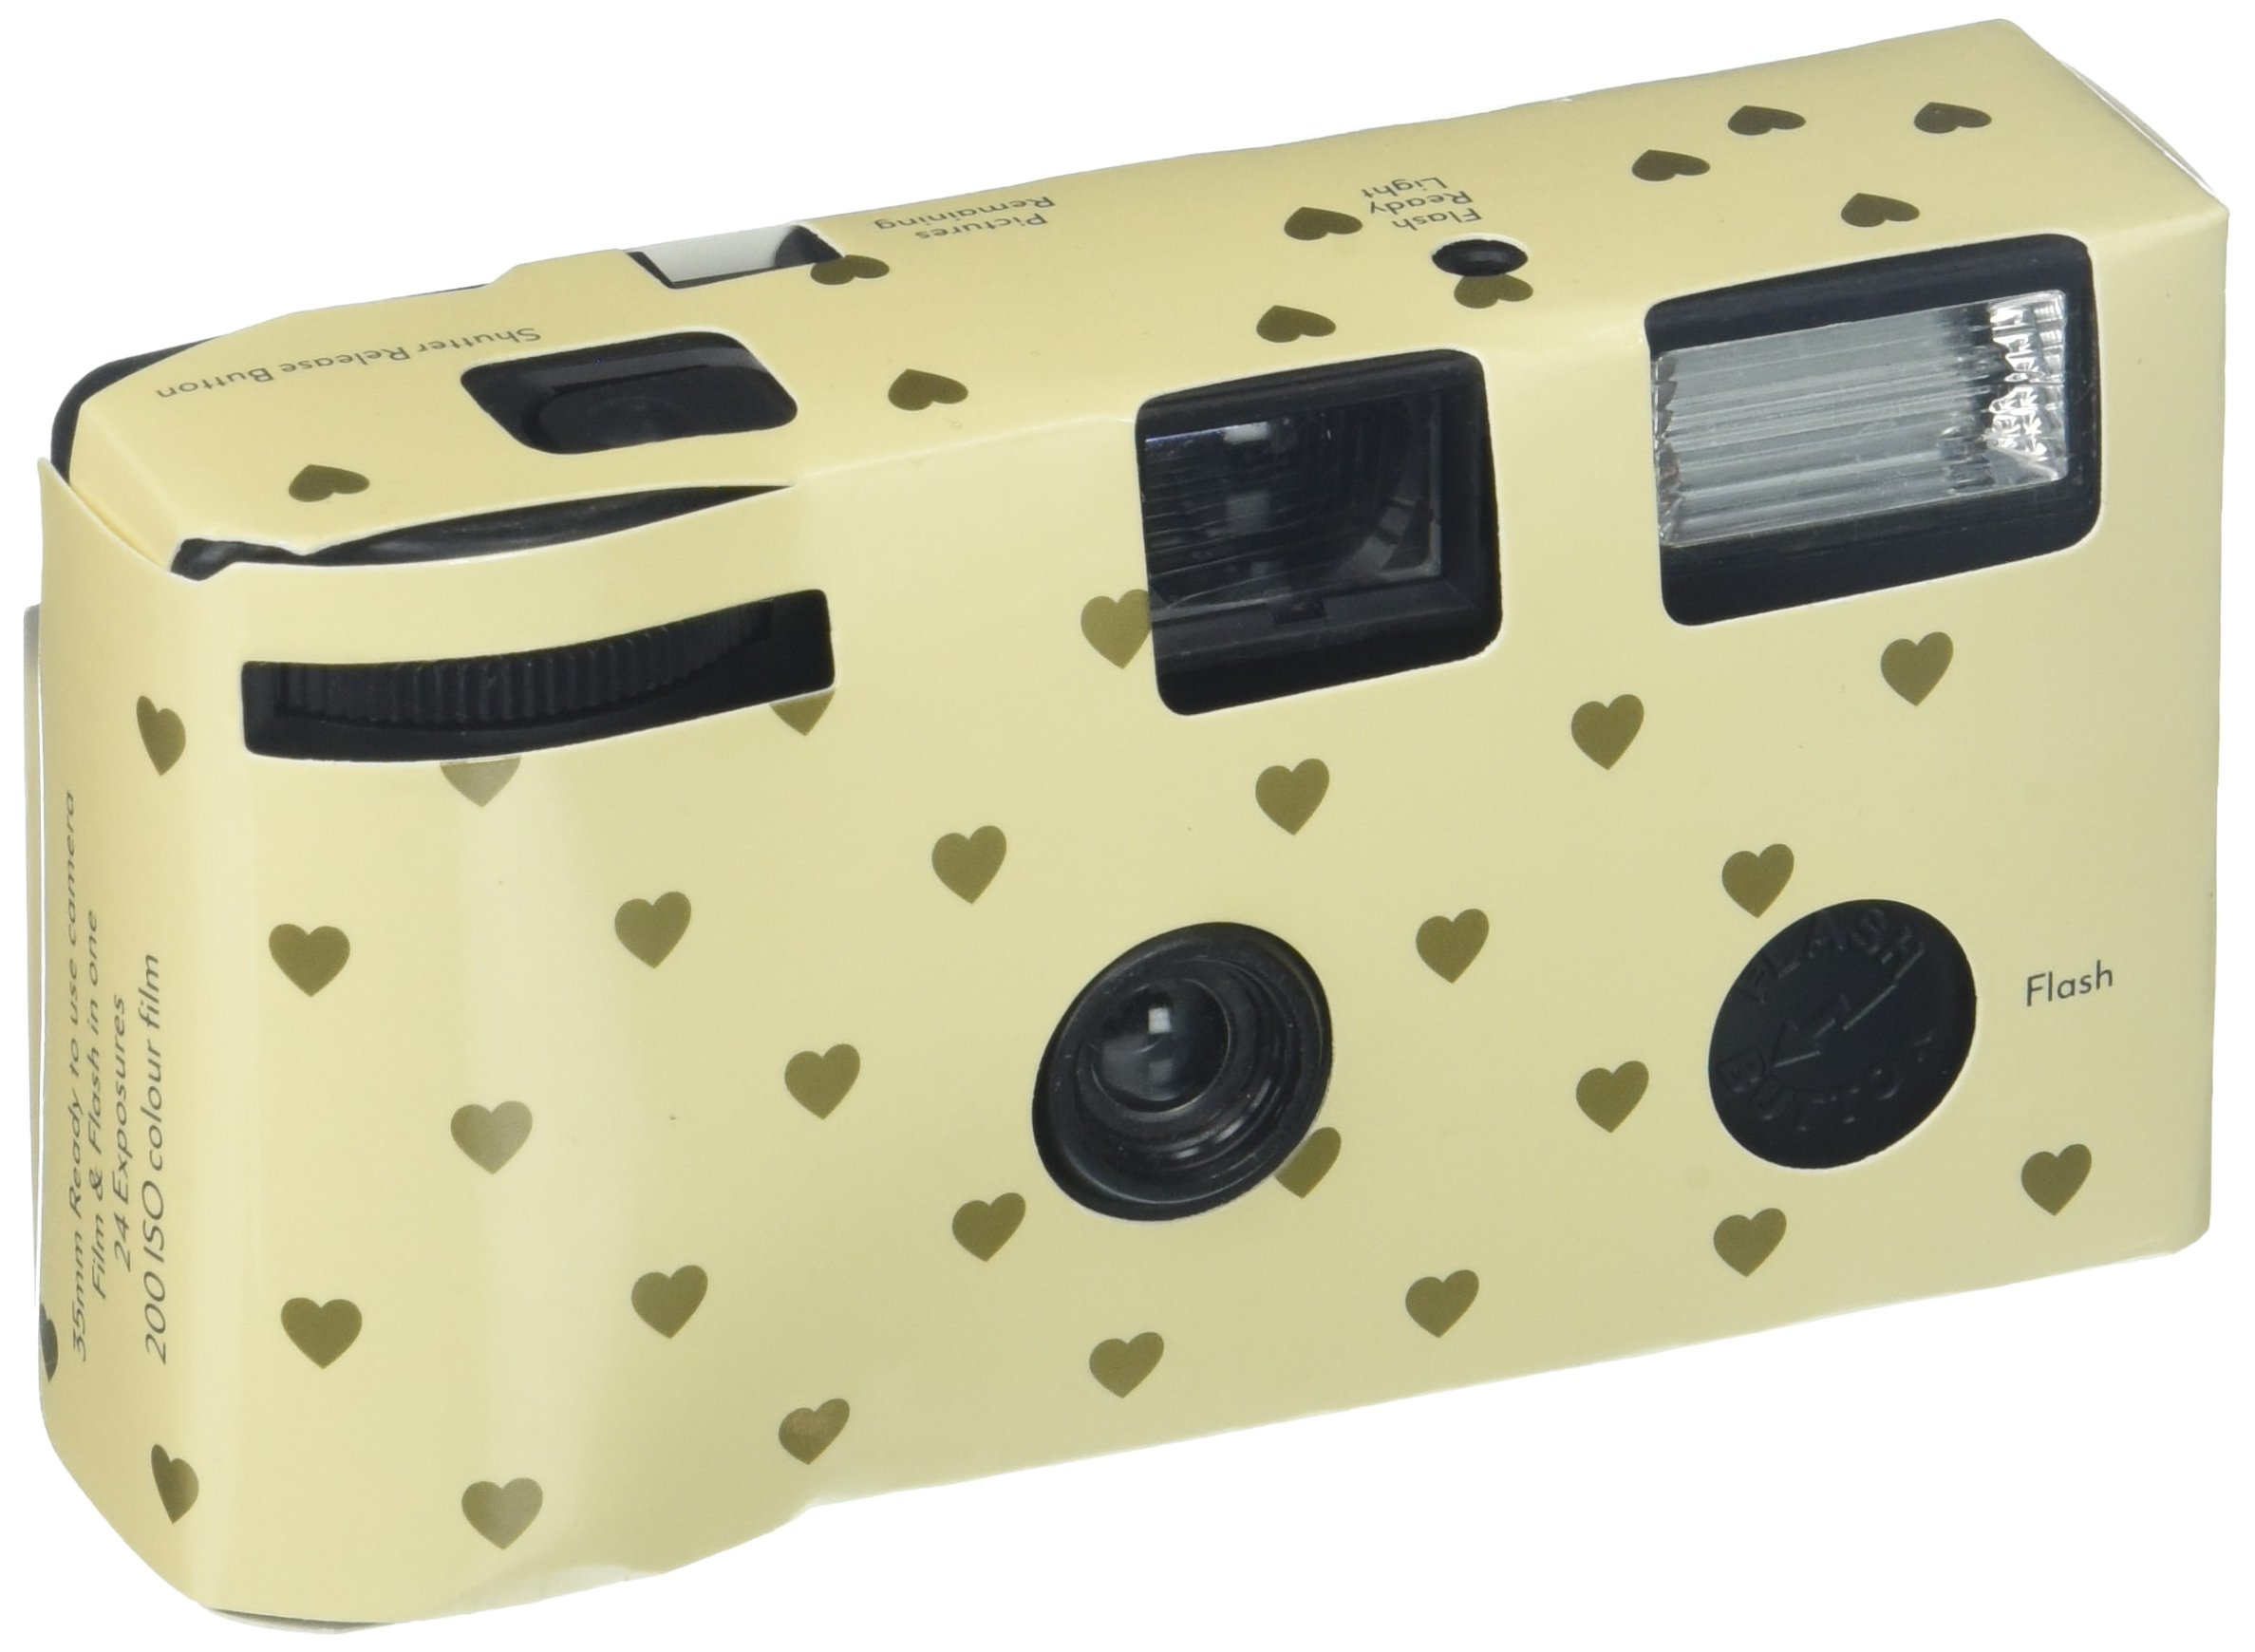 Single Use Camera - Ivory and Gold Hearts Design by Weddingstar Inc.